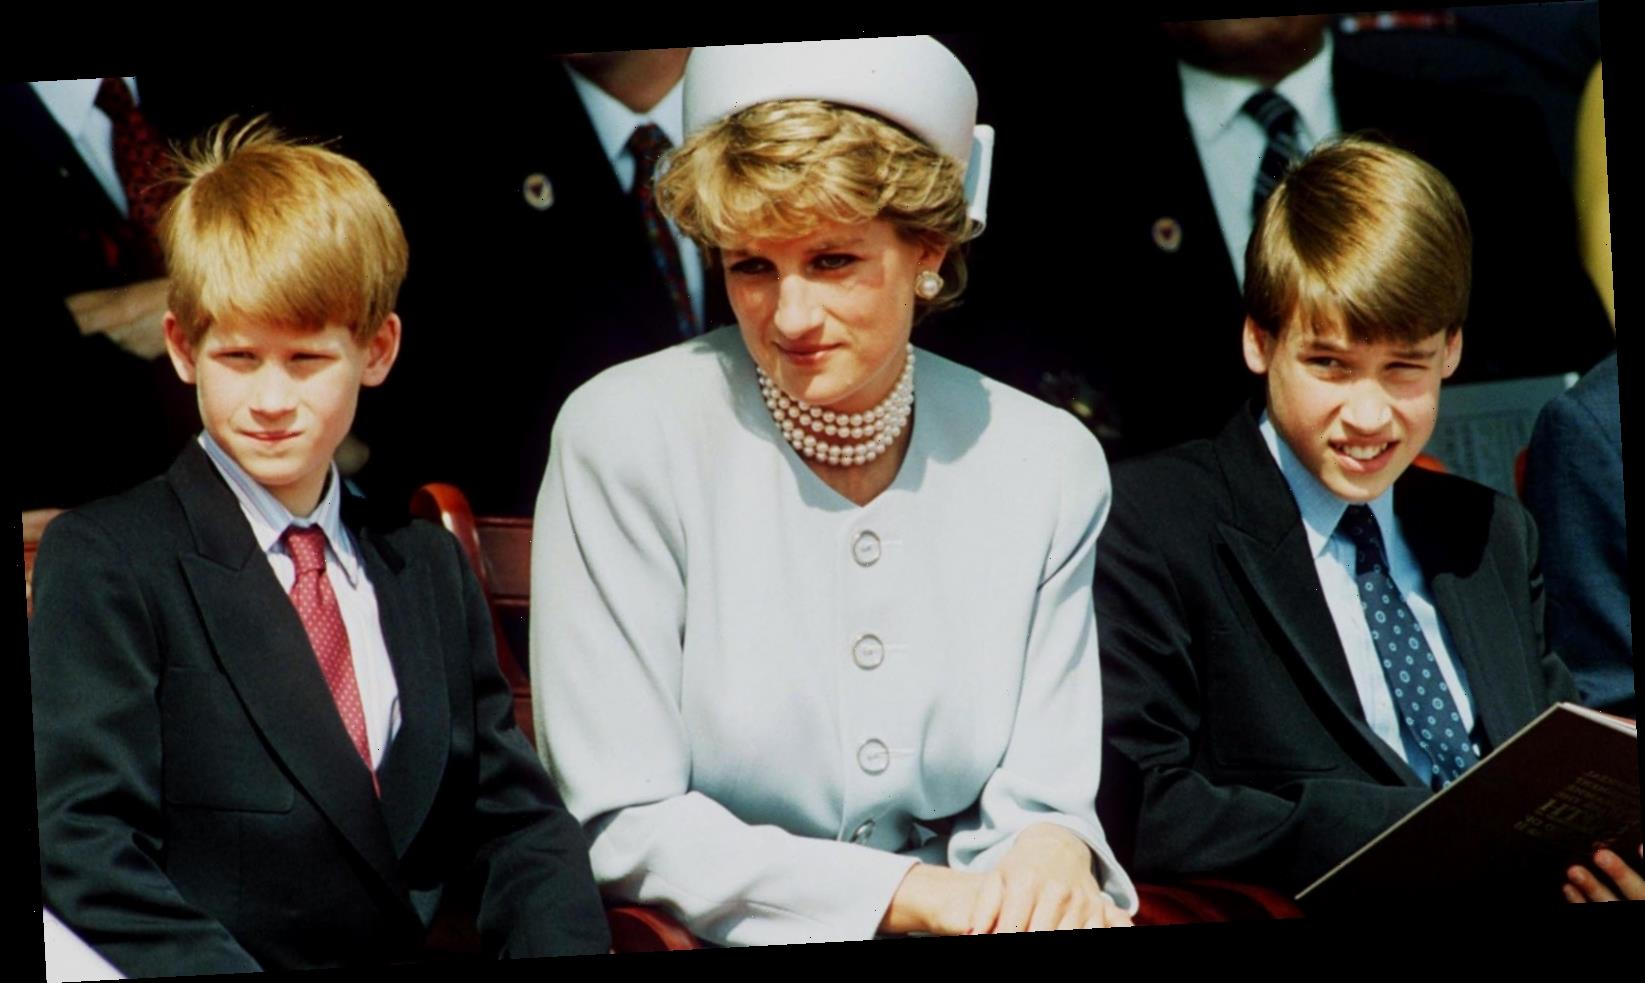 Prince William Has Some Thoughts About The Princess Diana Investigation